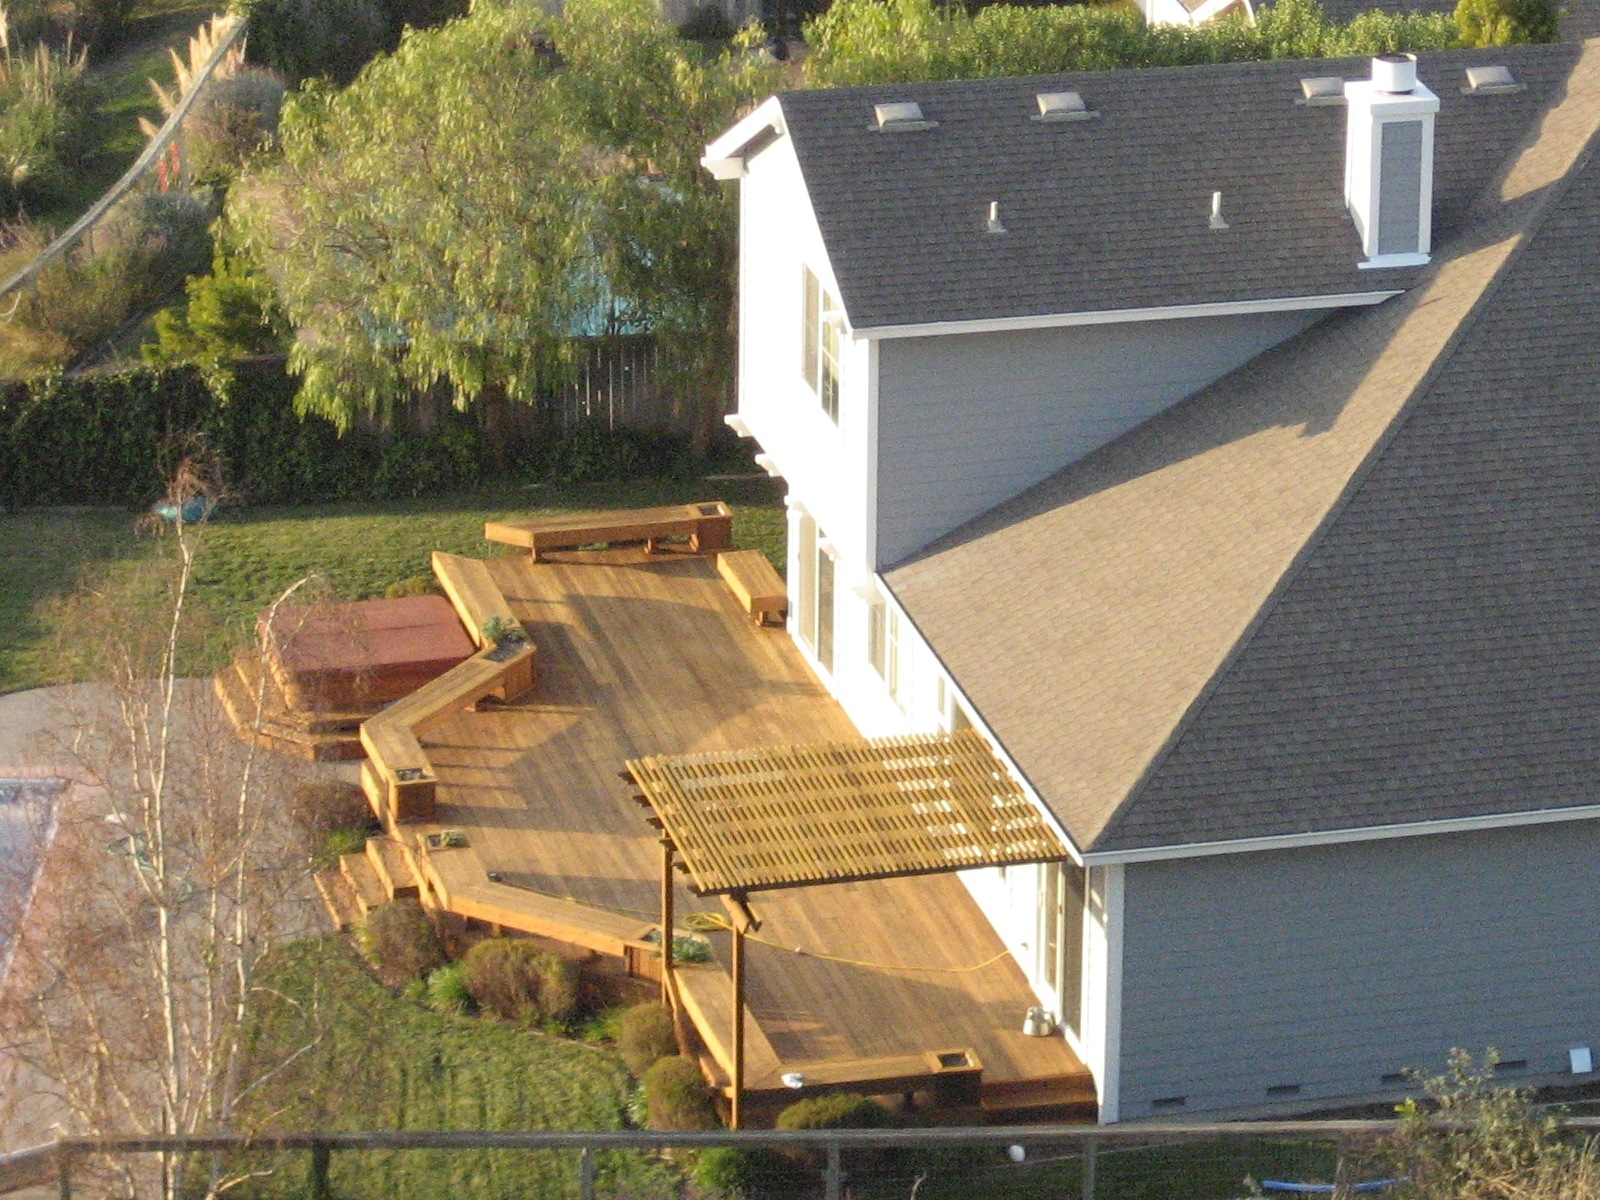 Backyard Deck Plans : FileBackyard deckJPG  Wikipedia